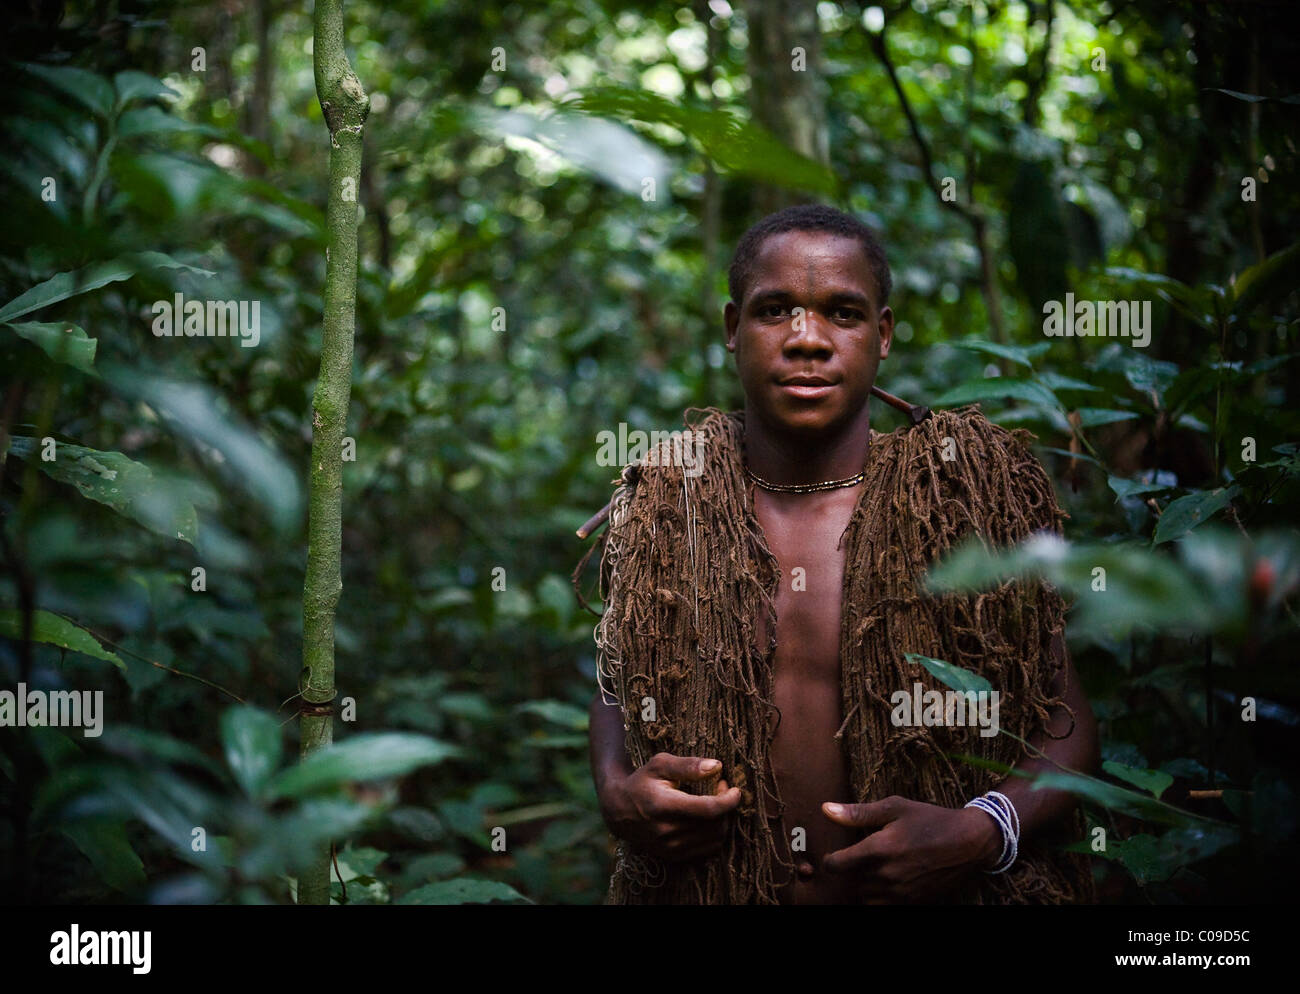 The hunter-pygmy with a net. The hunter-pygmy with a net before hunting - Stock Image